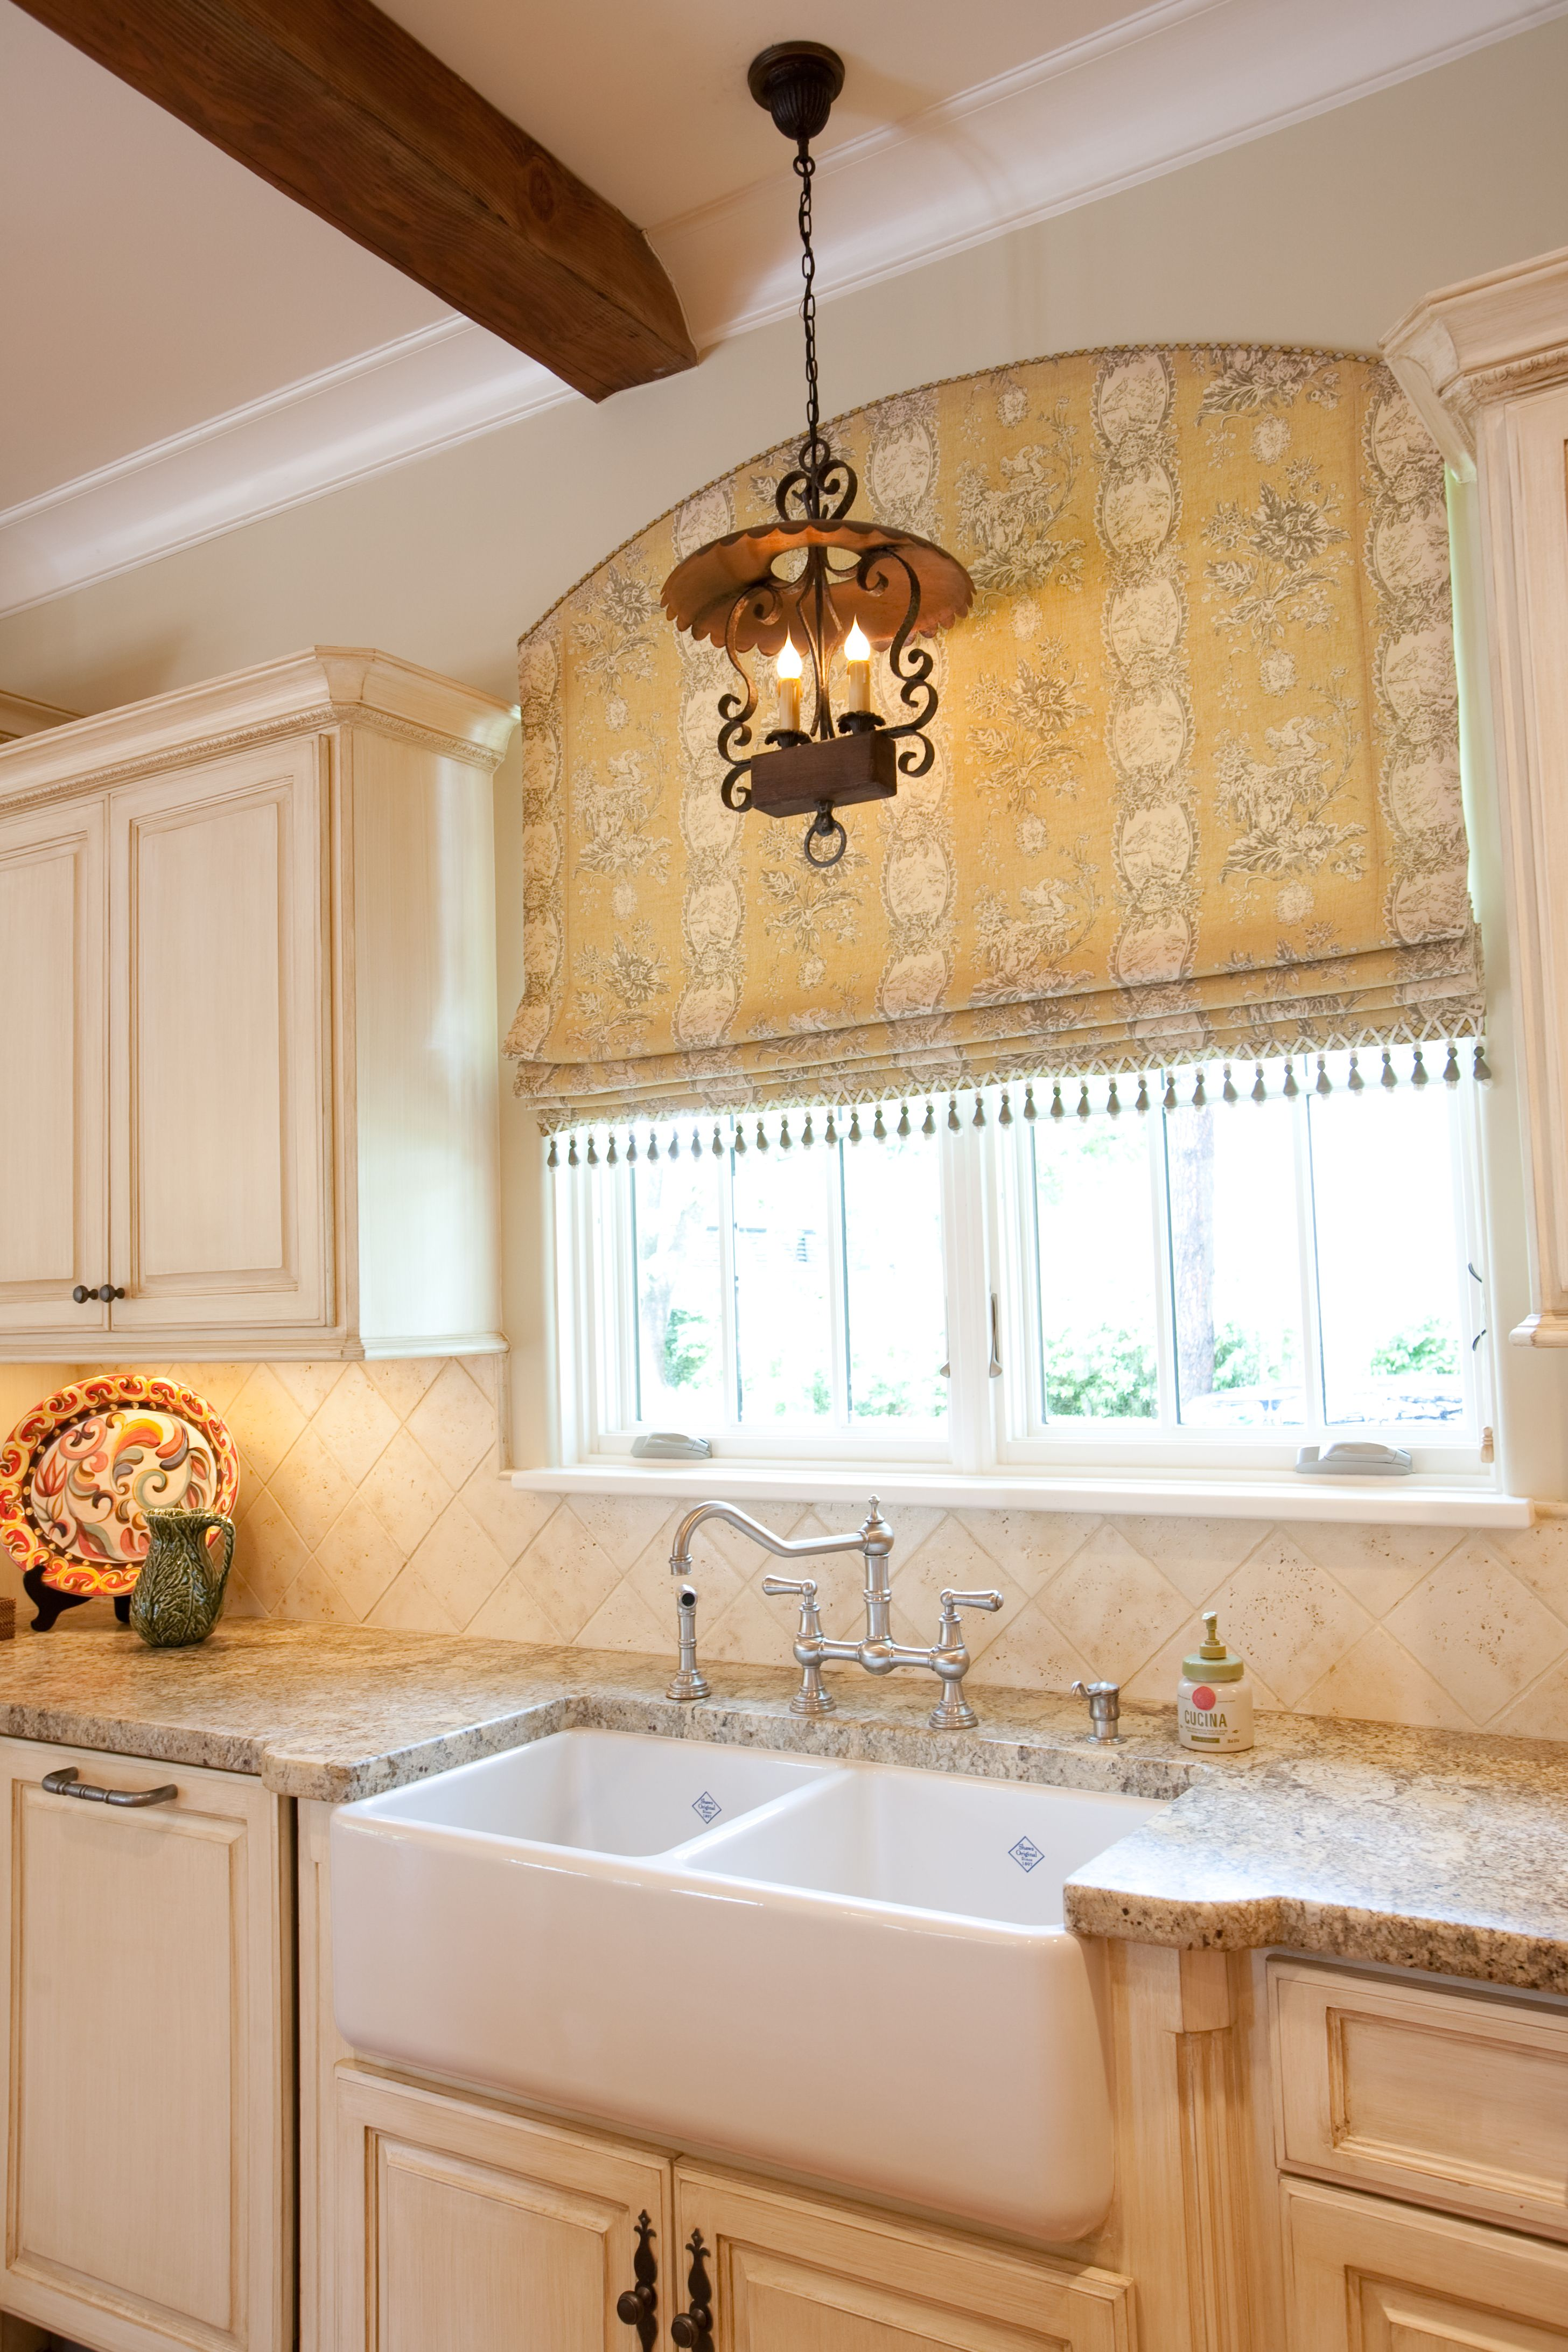 Creative Kitchen Window Treatments Hgtv Pictures Ideas: Arched Roman With Welting Along Top Edge And Fringe Along